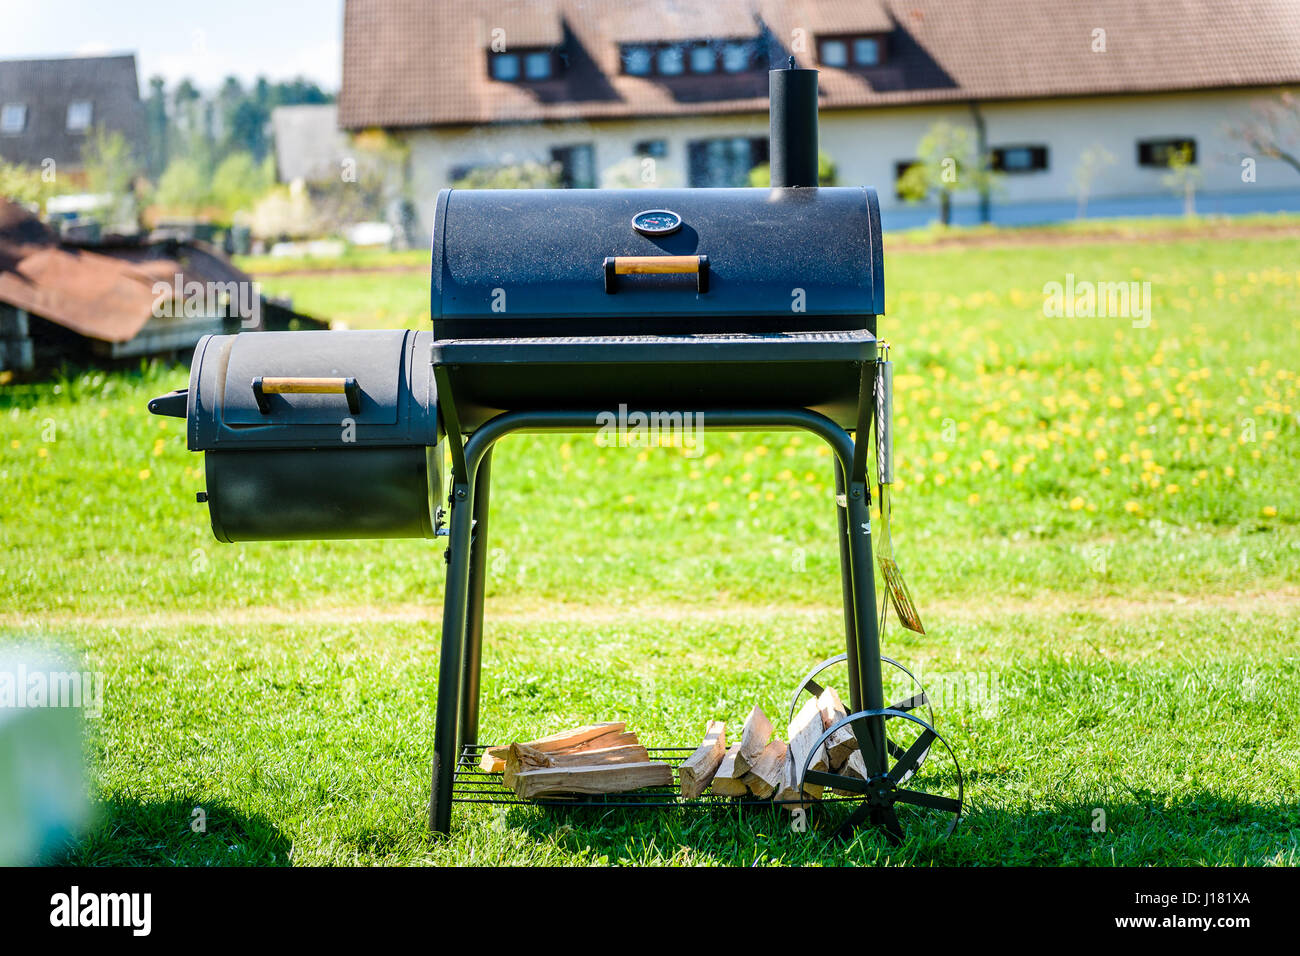 Preparing delicious meat in slow cooking smoker in backyard. Easy to use cylindrical smoker at family backyard barbecue - Stock Image